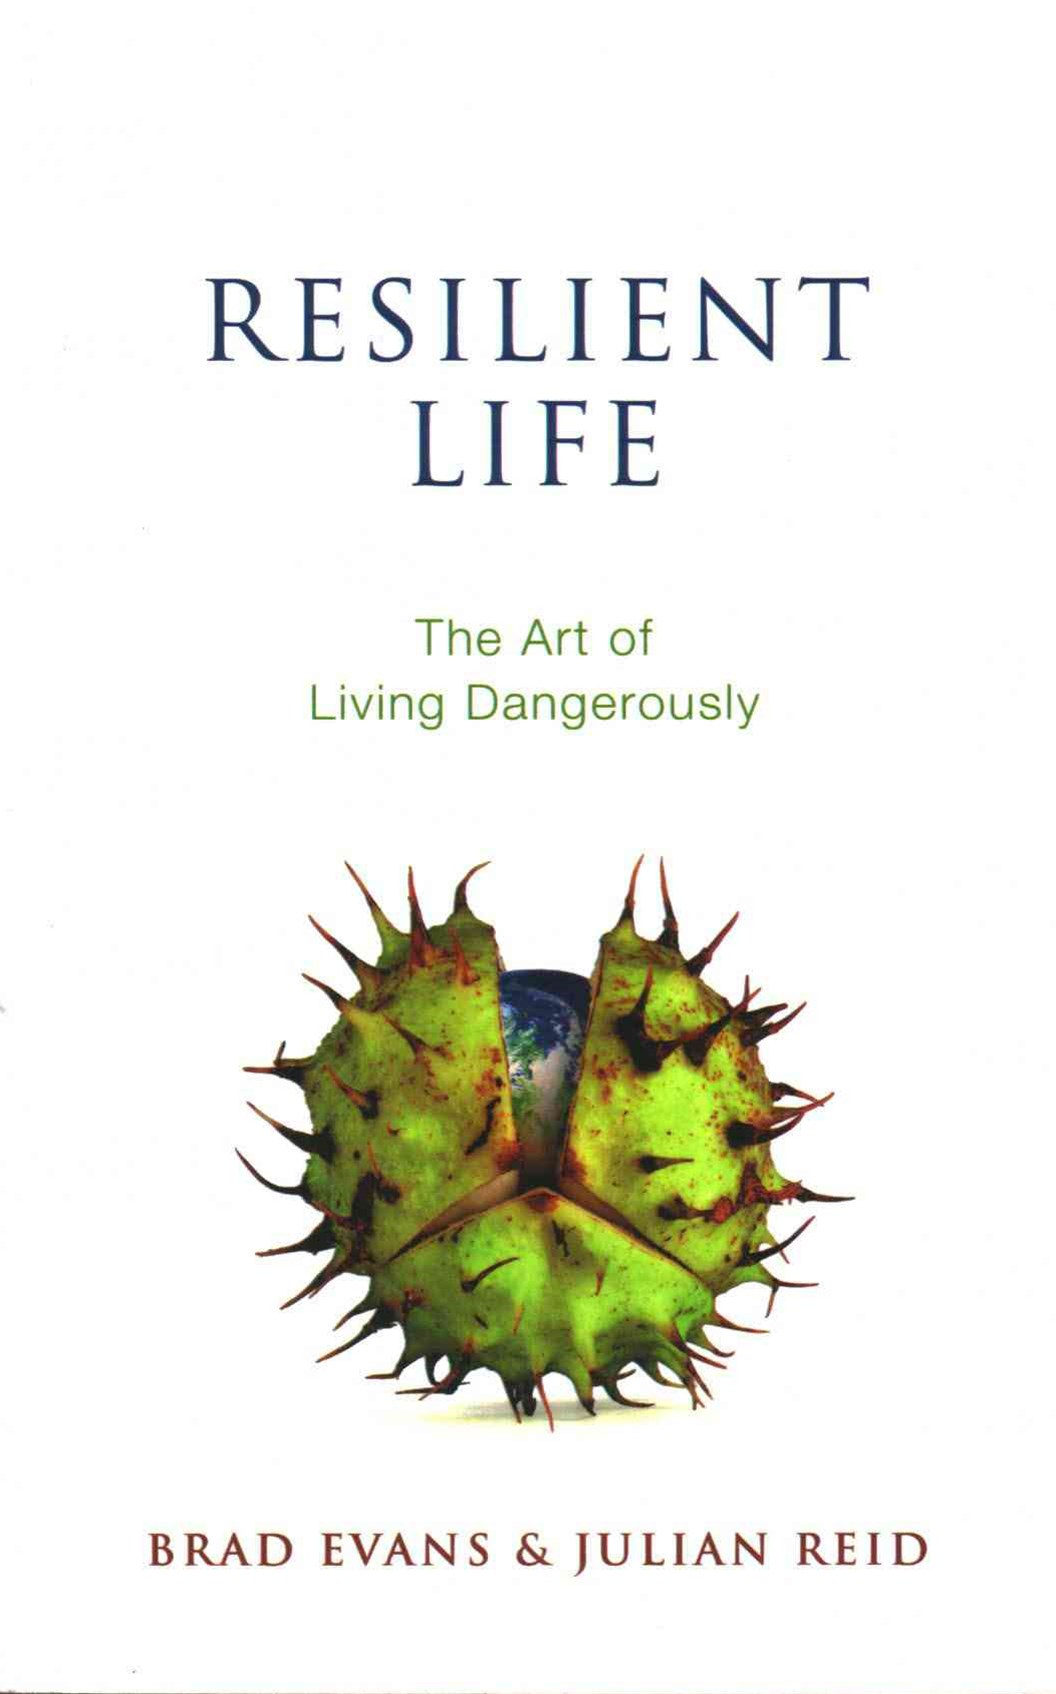 Resilient Life - the Art of Living Dangerously